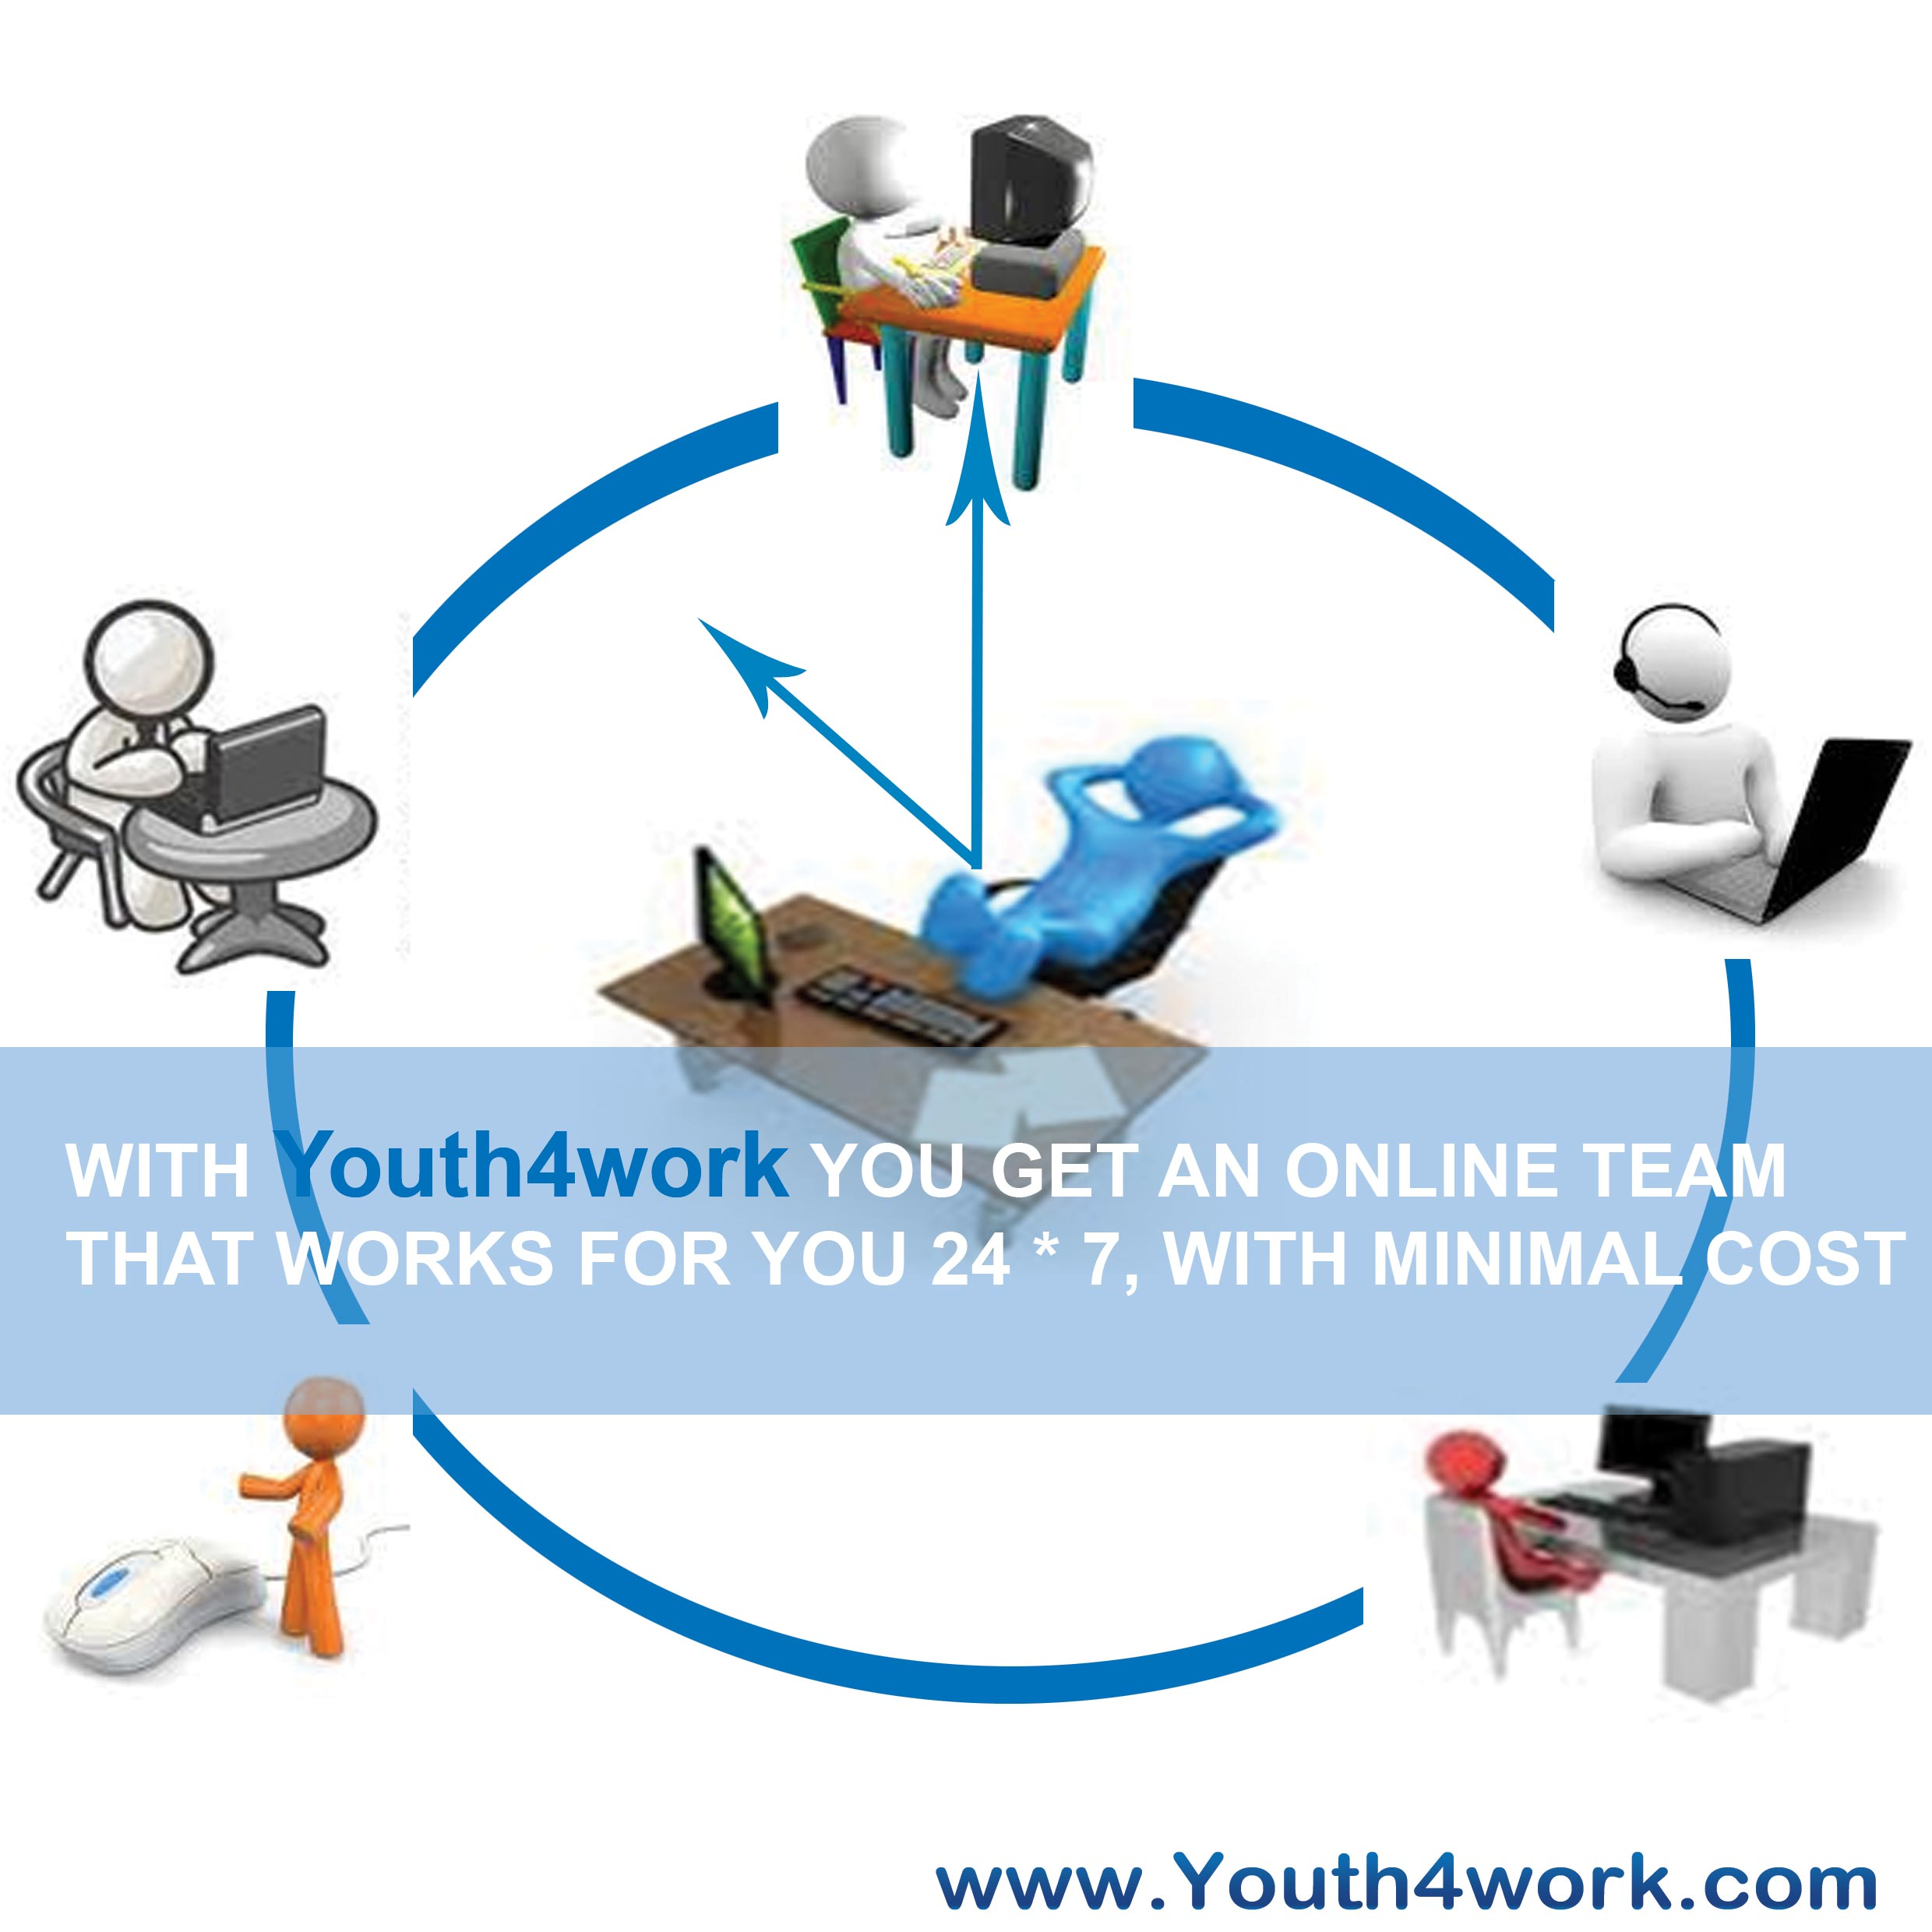 With Youth4work you get an oline team that works for you 24* 7, with minimal cost